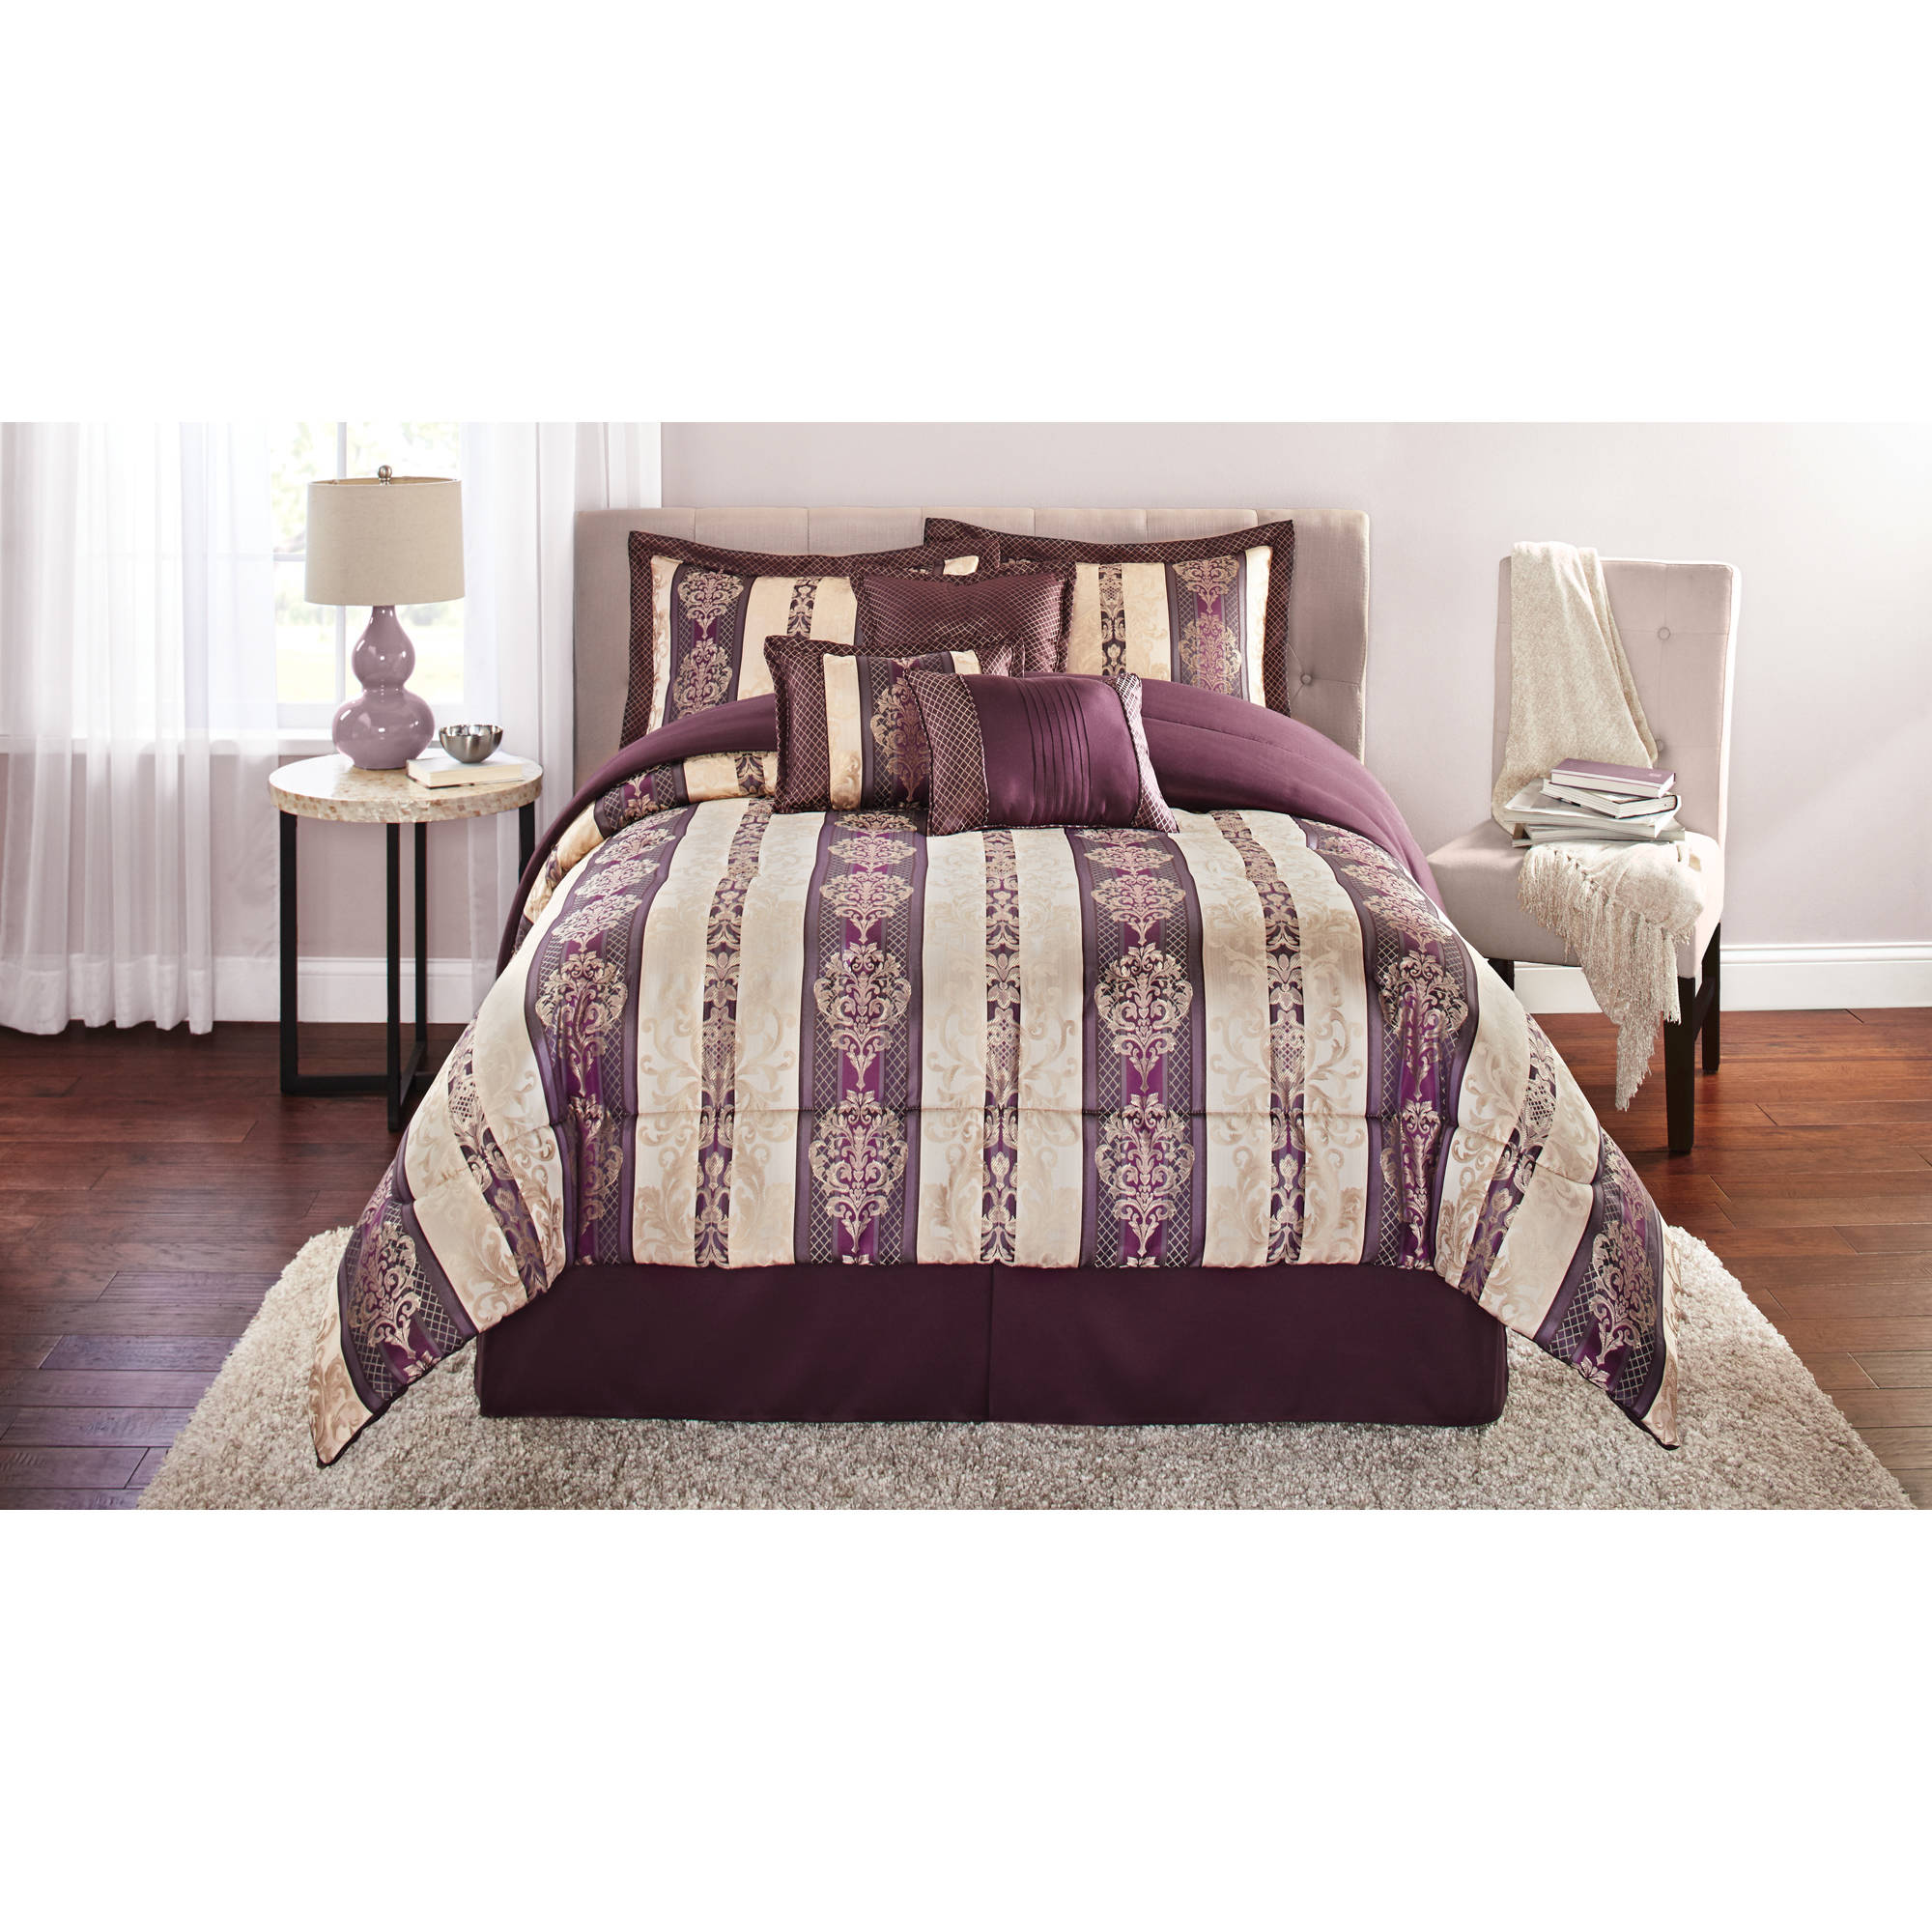 Bedroom Decor Adelaide discontinued*** mainstays adelaide 7-piece damask embroidered